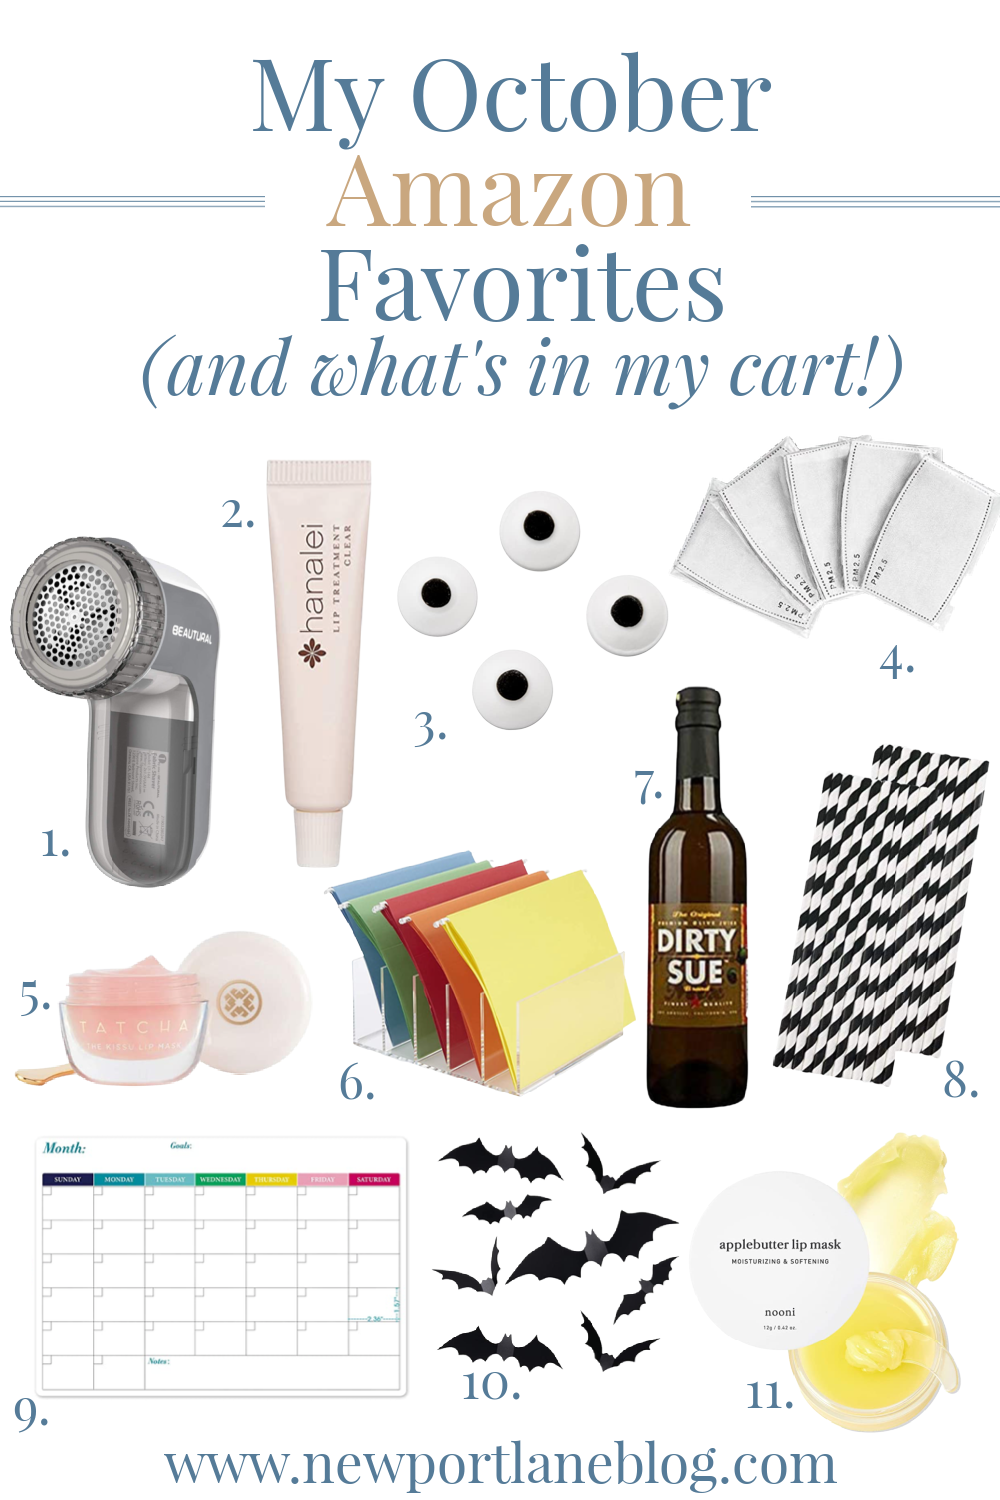 My October Amazon Favorites (and what's in my cart!)